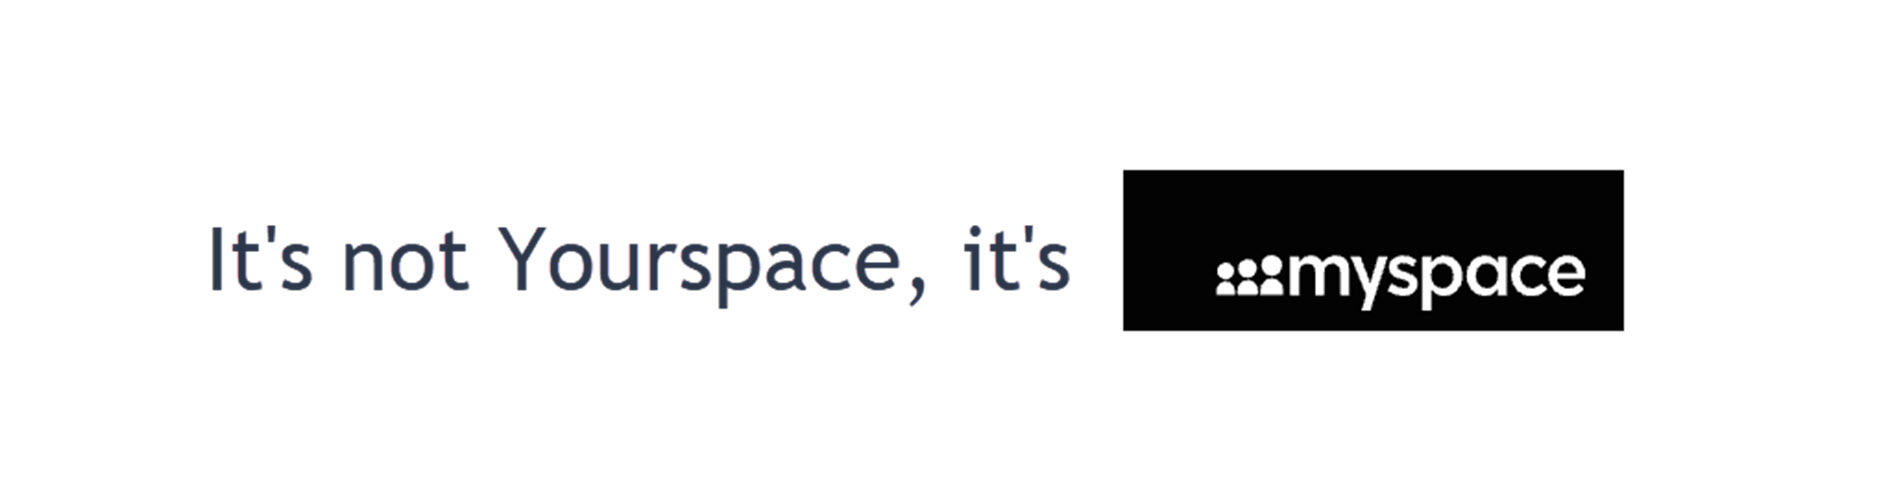 It's not Yourspace, it's Myspace